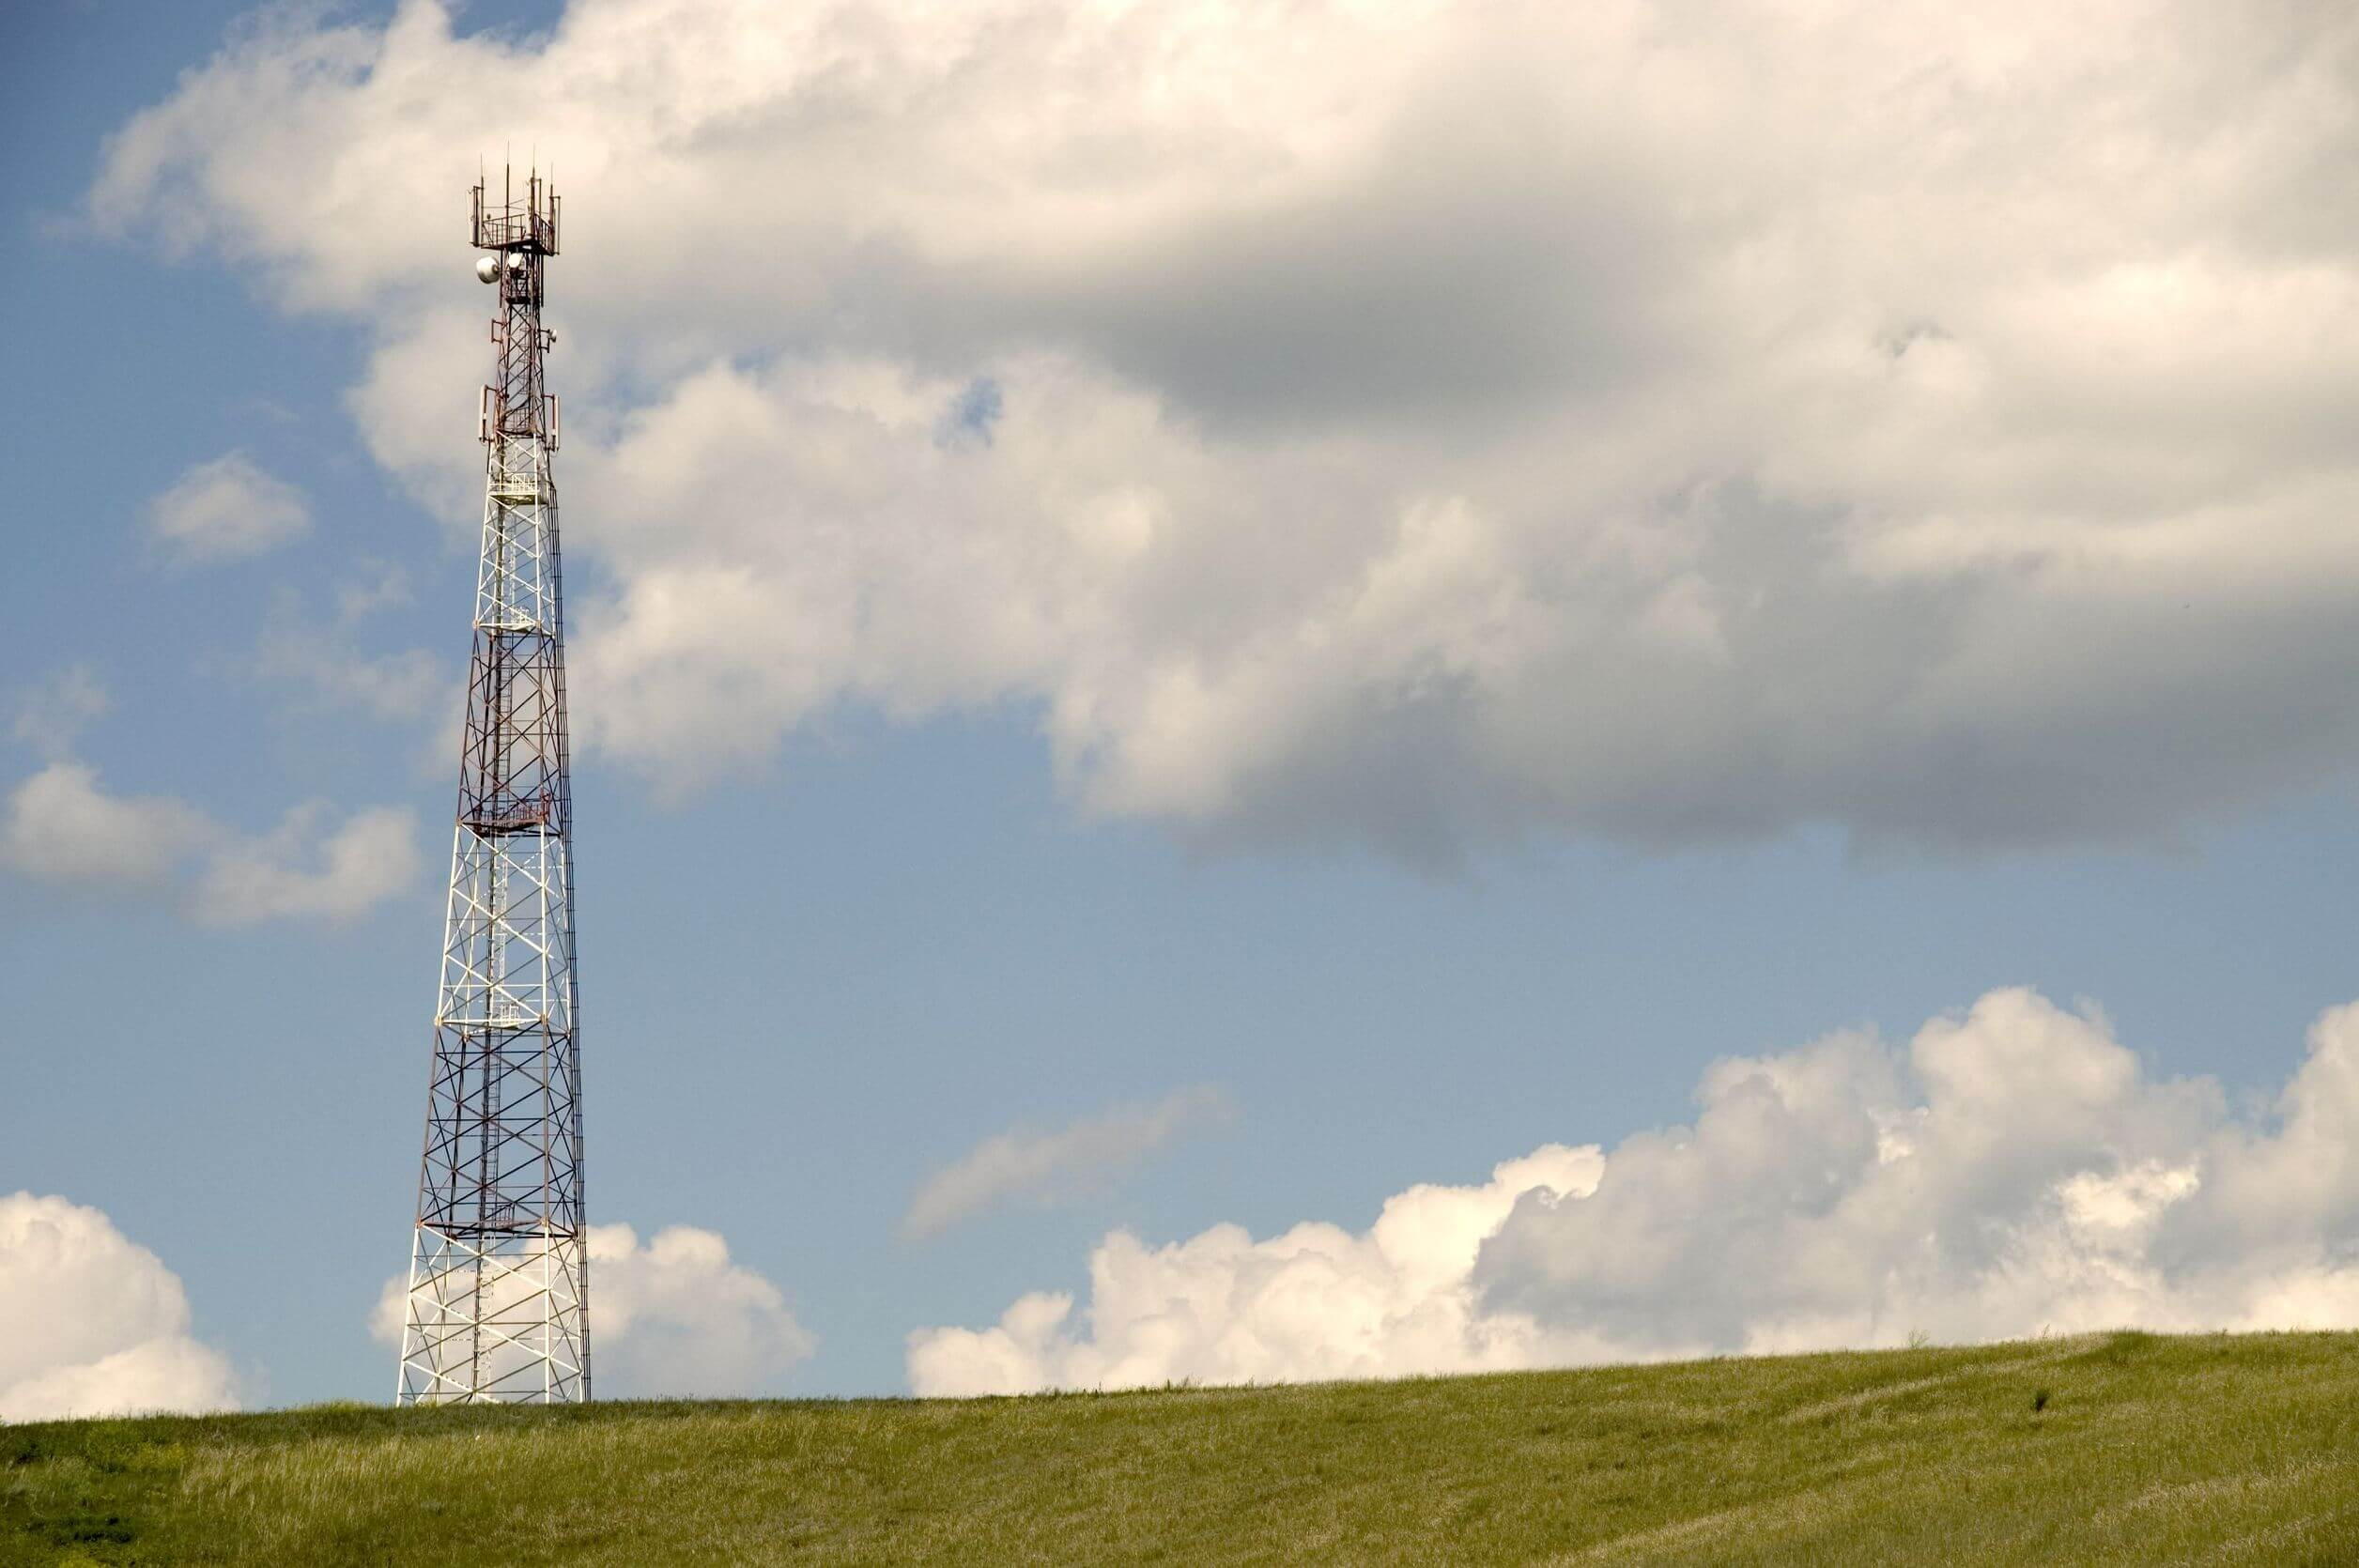 New Cell Tower Lease: What Is a Property Owner's Bargaining Power?